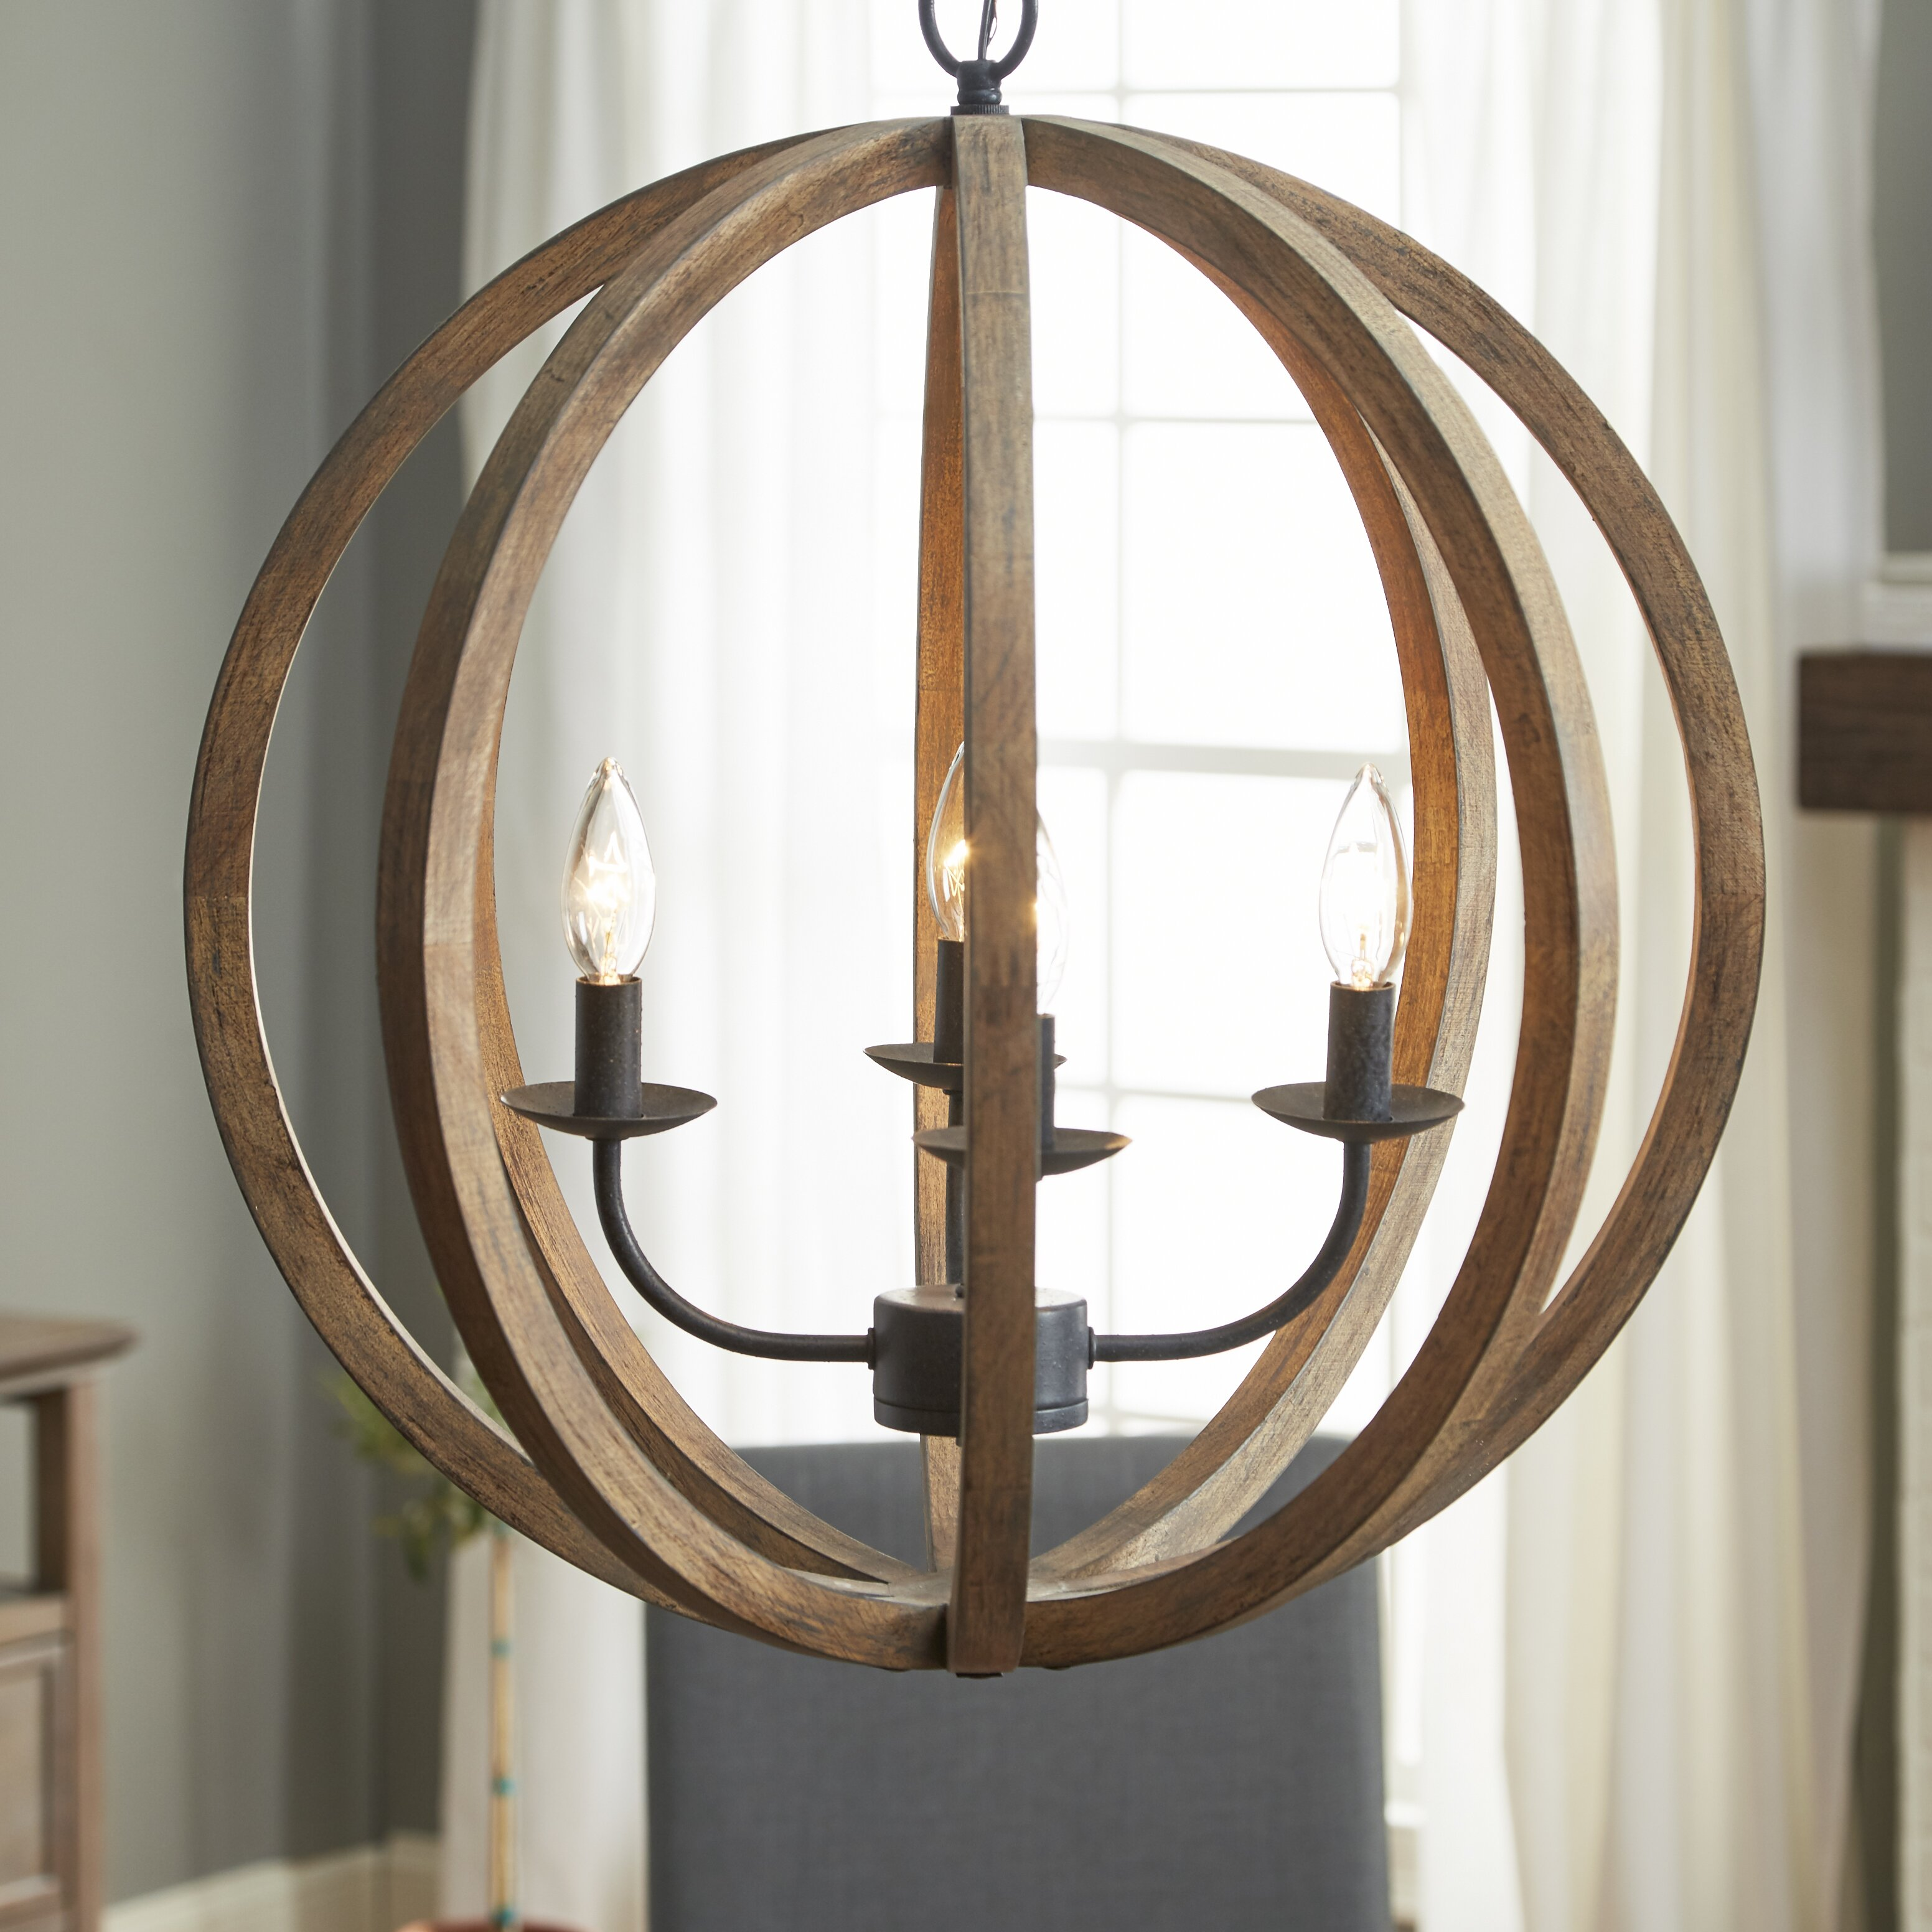 Wayfair Dining Room Lighting: Birch Lane Stanton 4-Light Candle-Style Chandelier